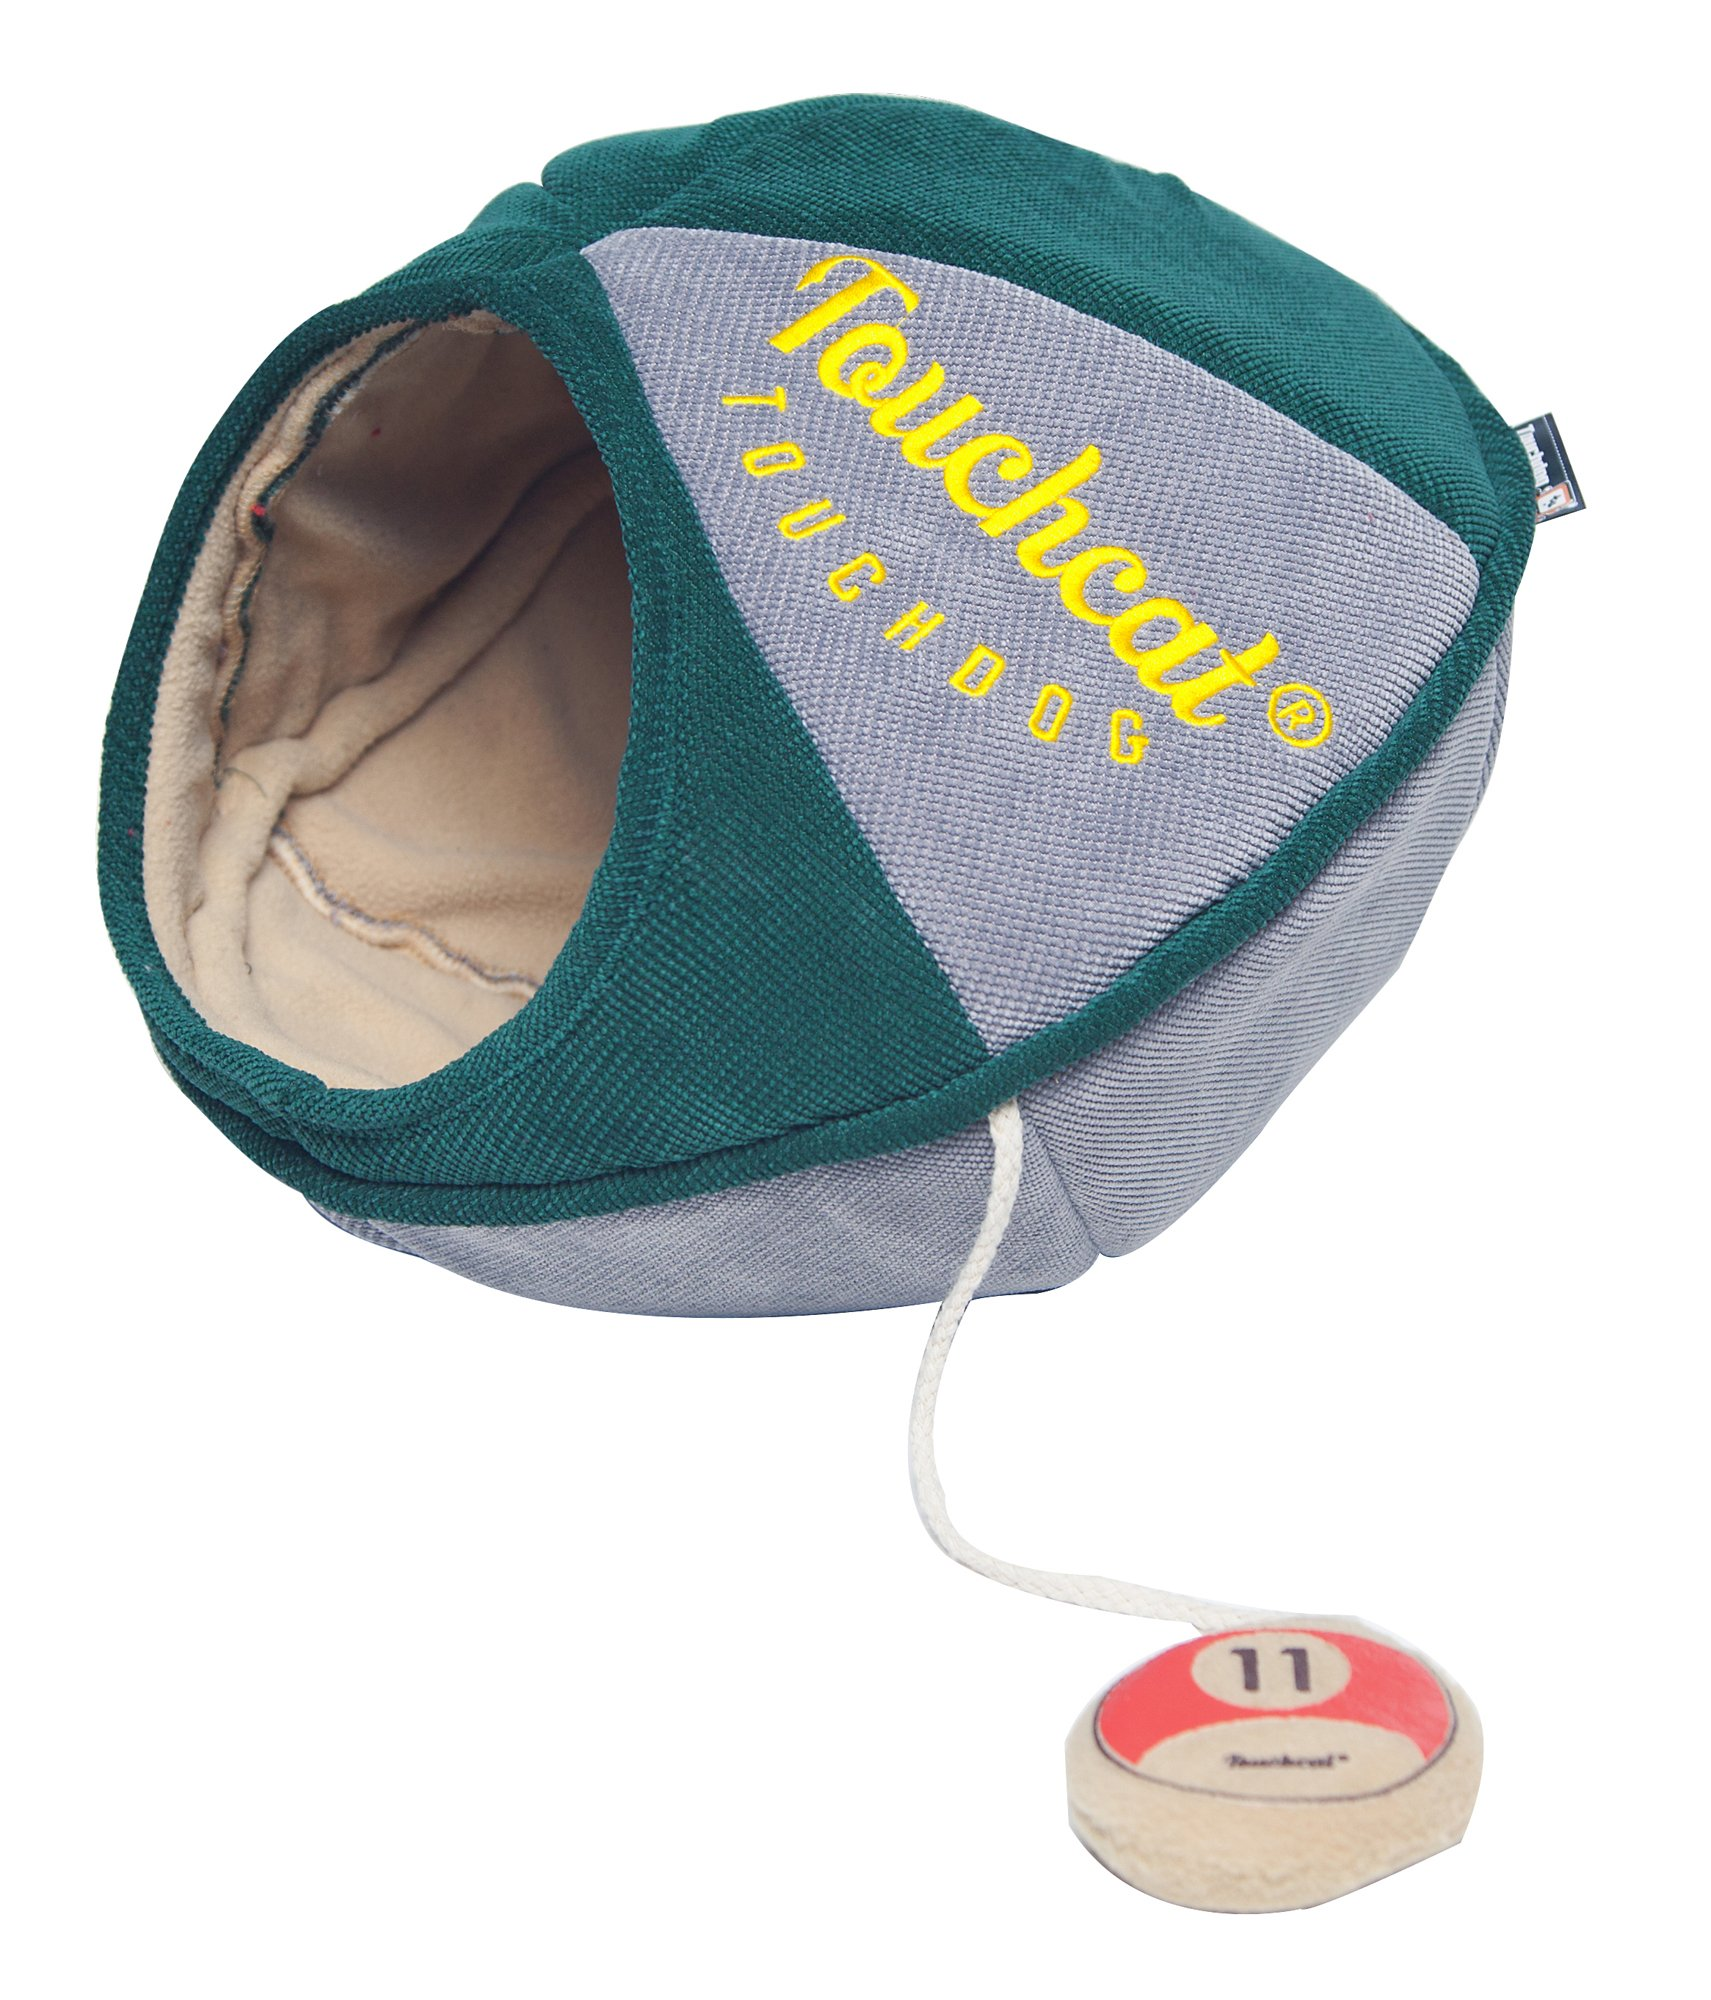 Touchcat 'Oval Saucer' Collapsible Walk-Through Kitty Pet Cat Bed House w/Play Active Teaser Toy, Large, Green